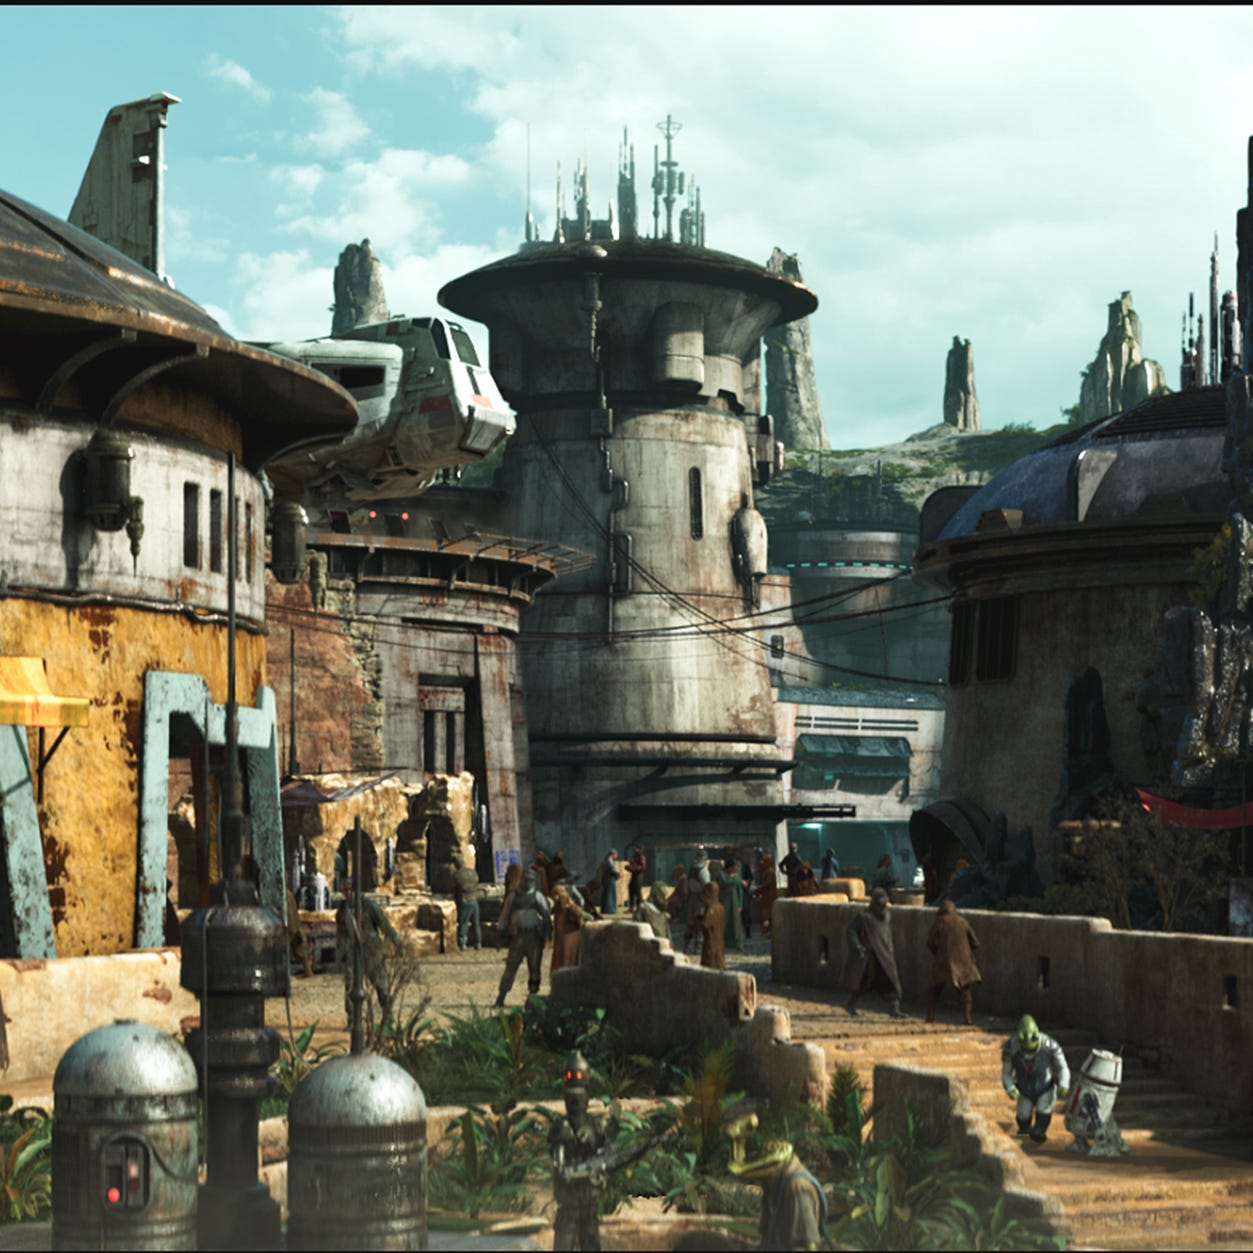 Reservations for Disney's Star Wars land are now available. Here's how to get yours